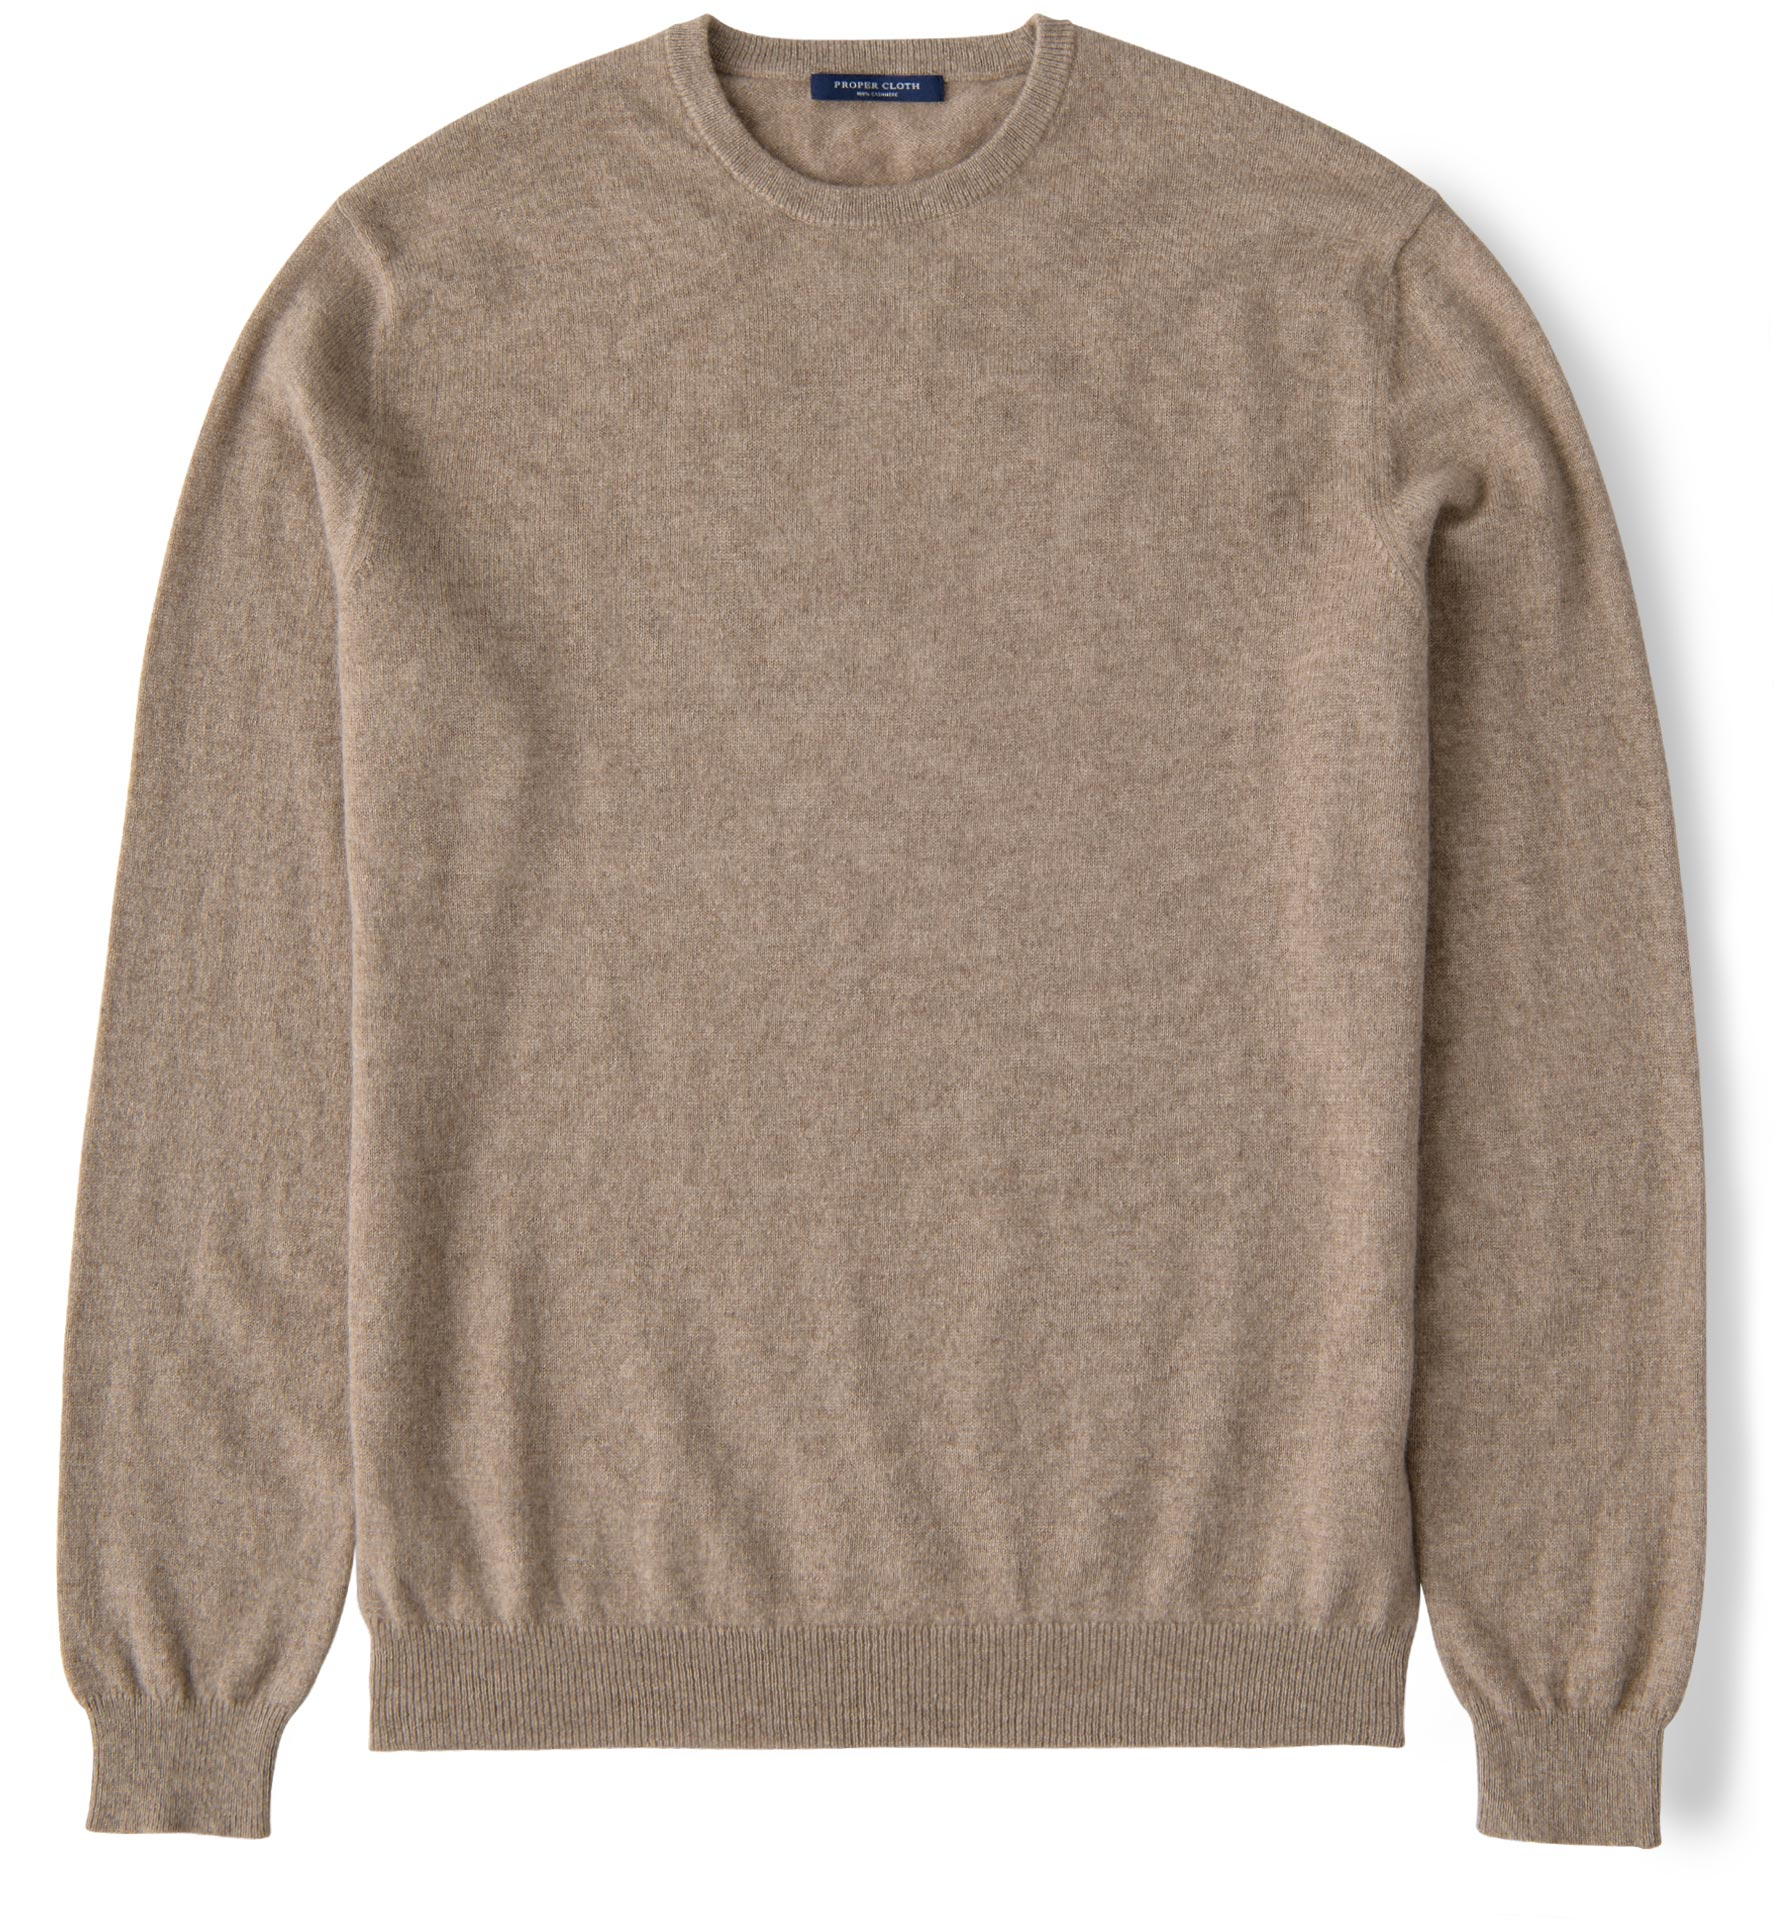 Zoom Image of Natural Taupe Cashmere Crewneck